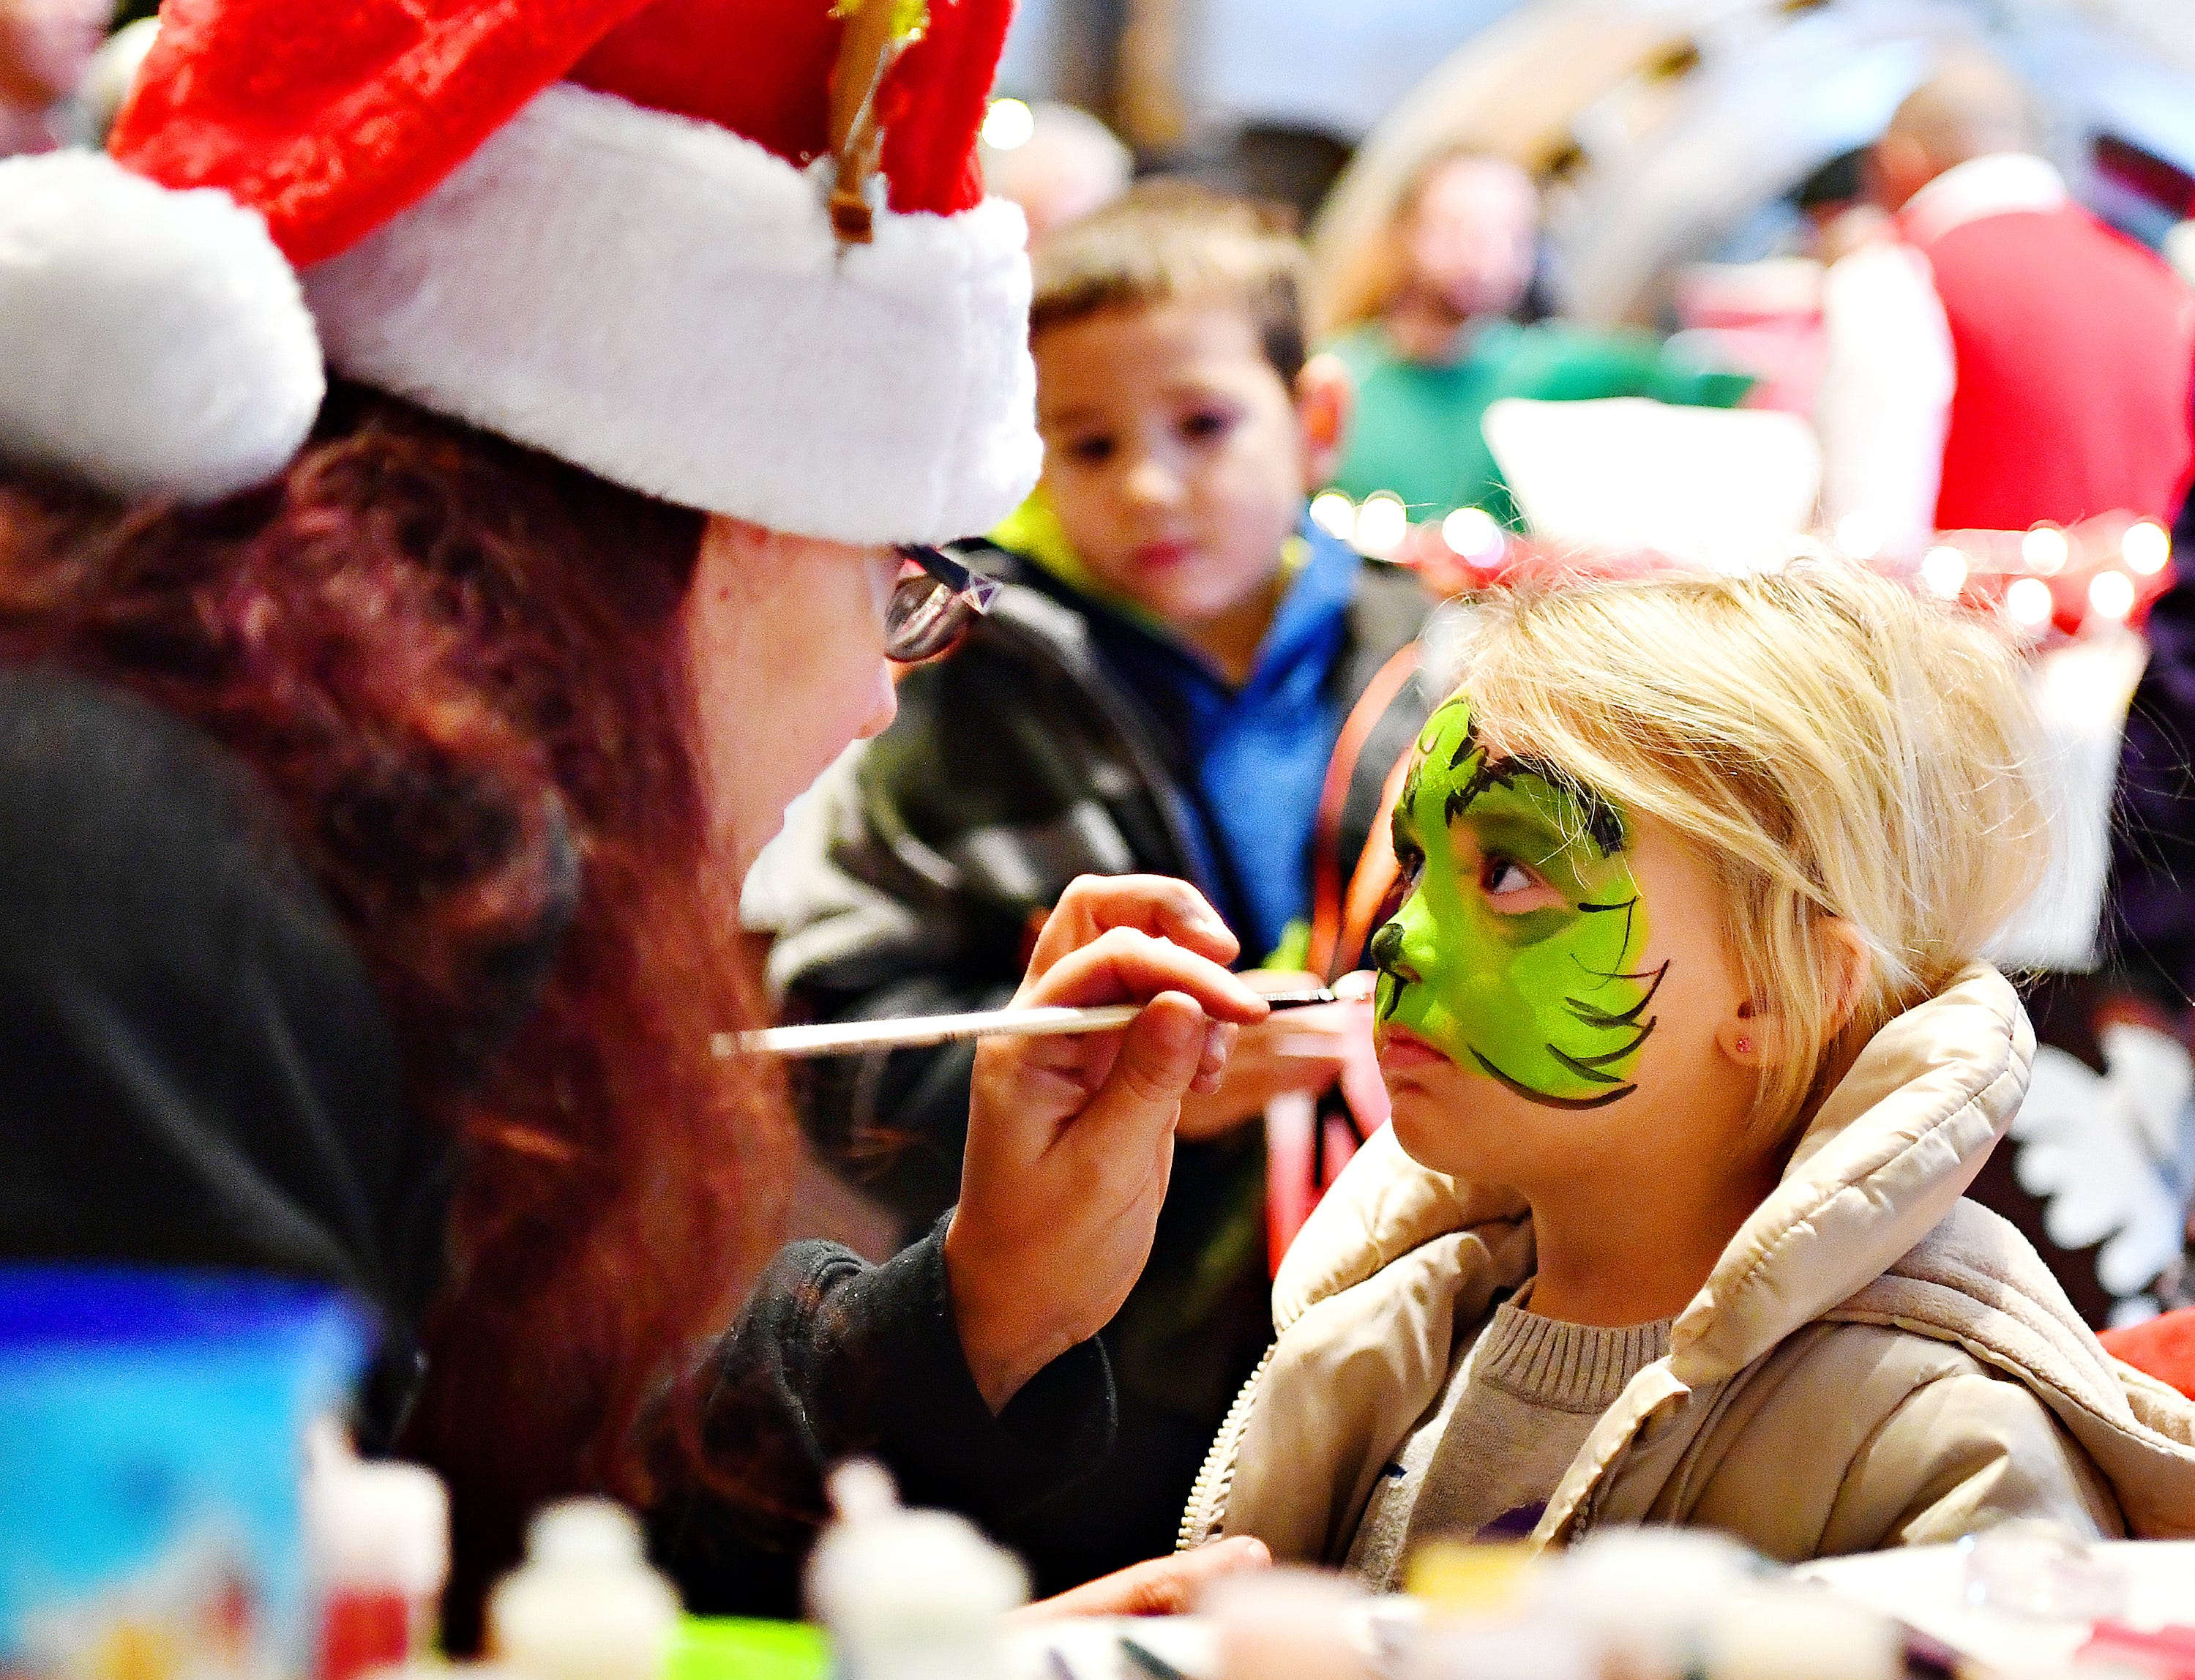 Katie Smock, left, of Atomic Bounce, paints a Grinch face on Avery Jackson, 3, right, of Springettsbury Township, while Carter Carroll, 6, of Springfield Township looks on at the Photo Opp Stop during Light Up York in York City, Saturday, Dec. 1, 2018. Dawn J. Sagert photo